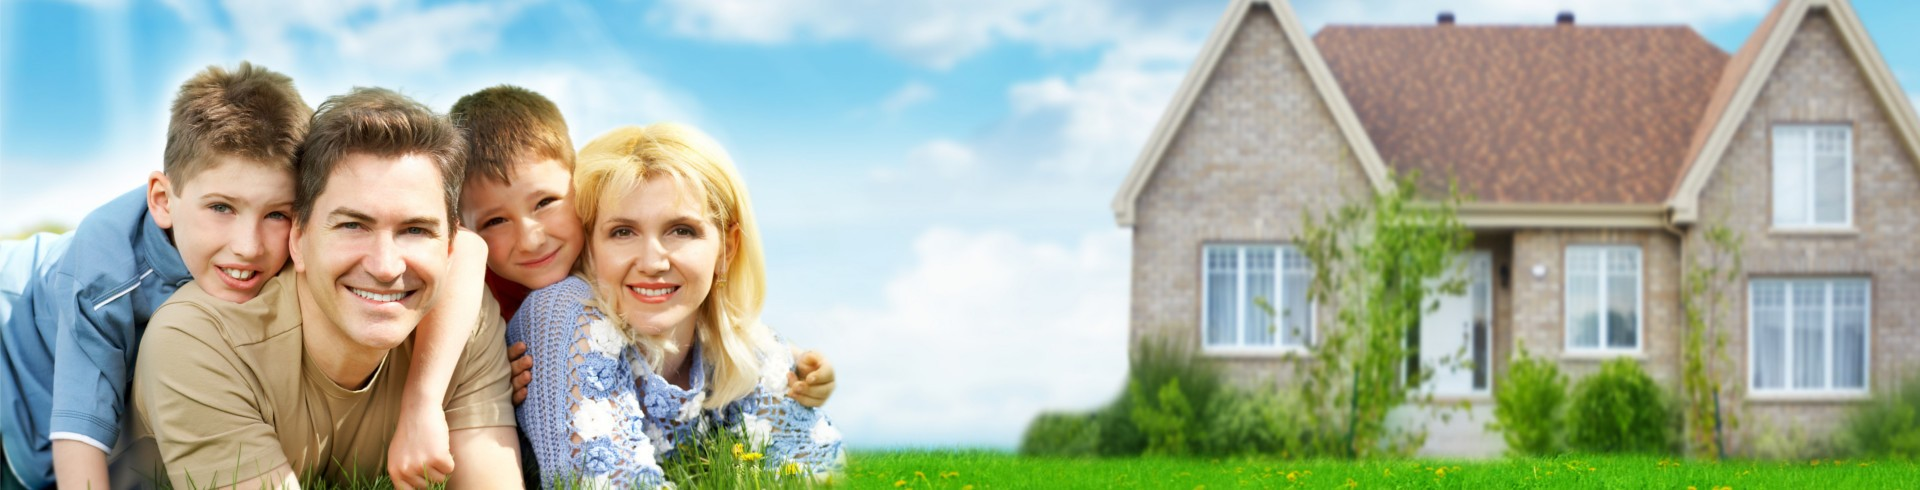 Find Texas Life Insurance Plans!